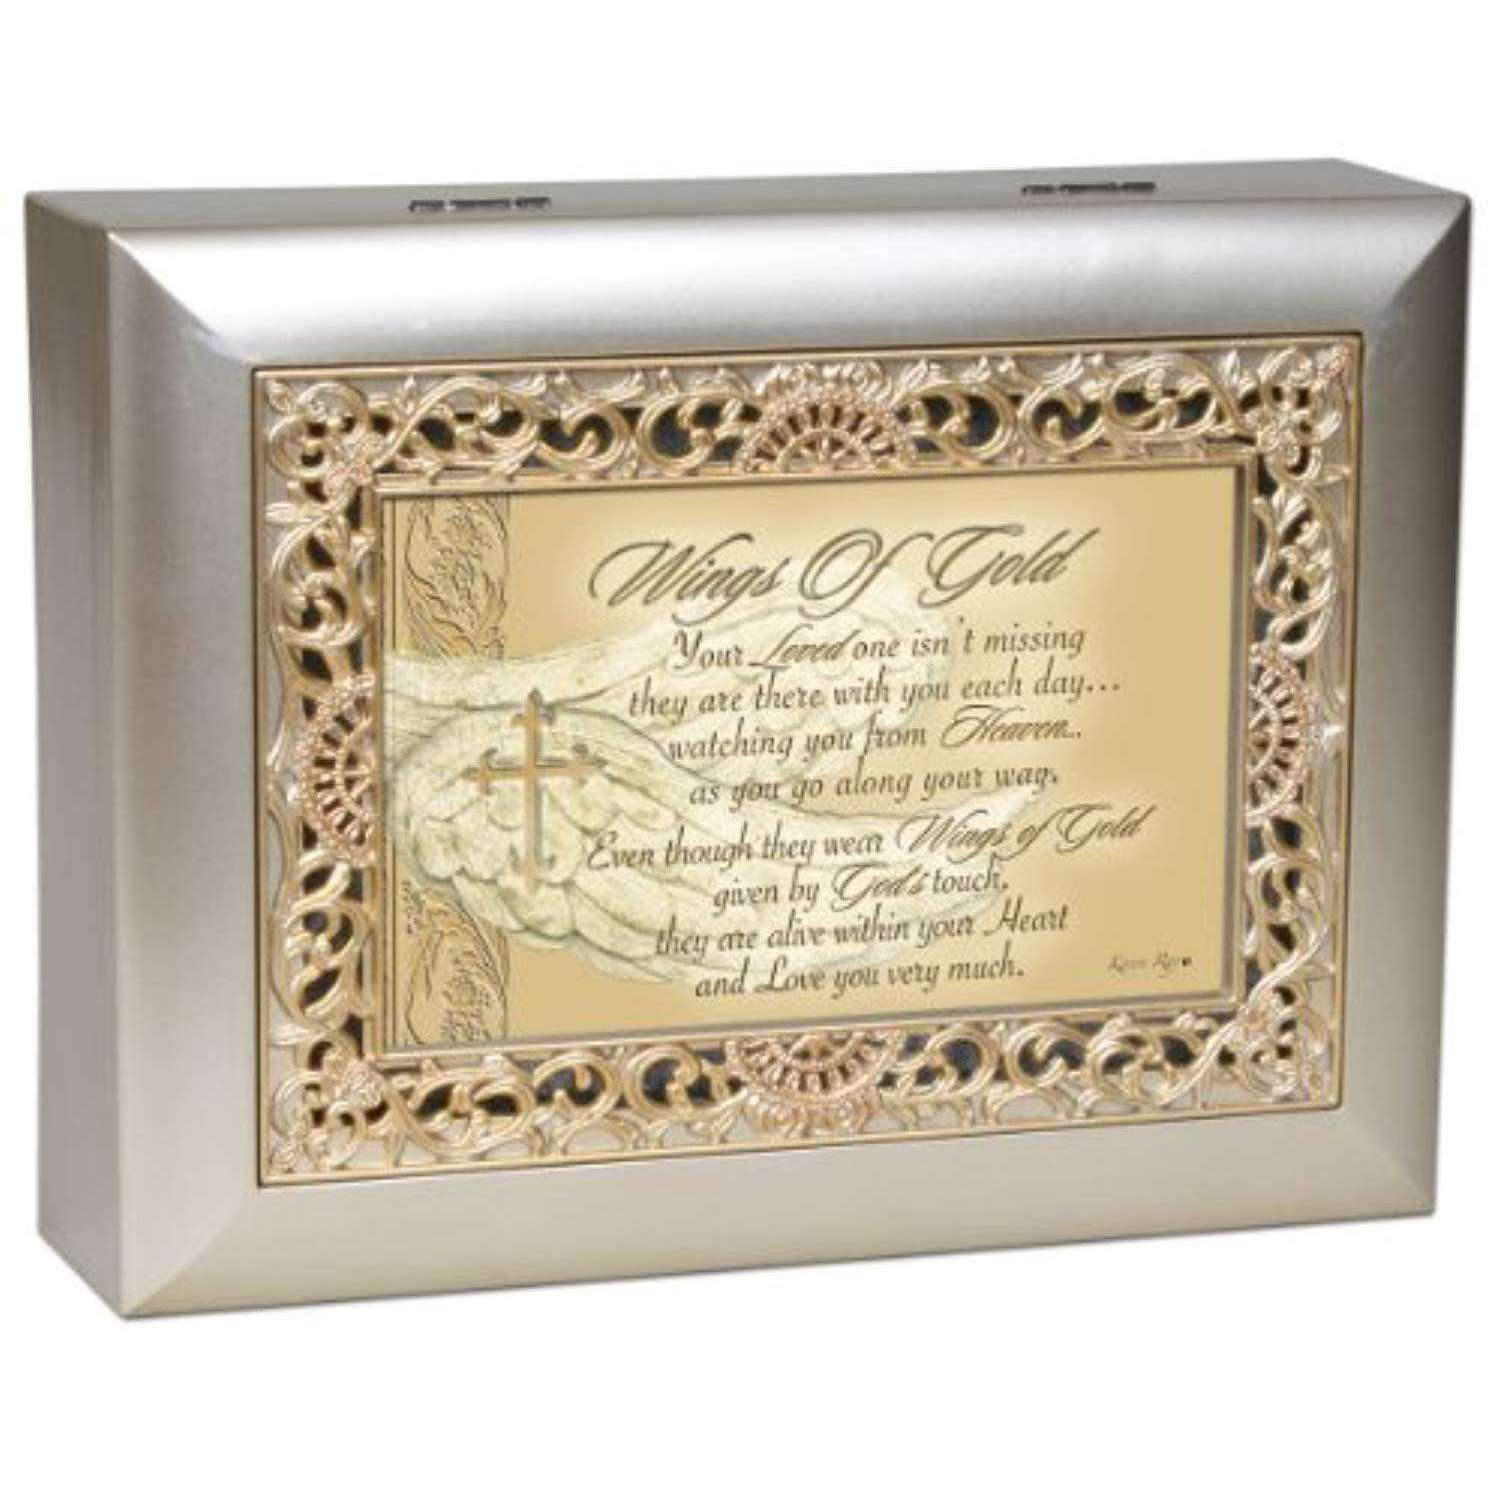 Wings of Gold Remembrance Musical Jewelry Box, Musical Jewelry Boxes,In God's Service Store